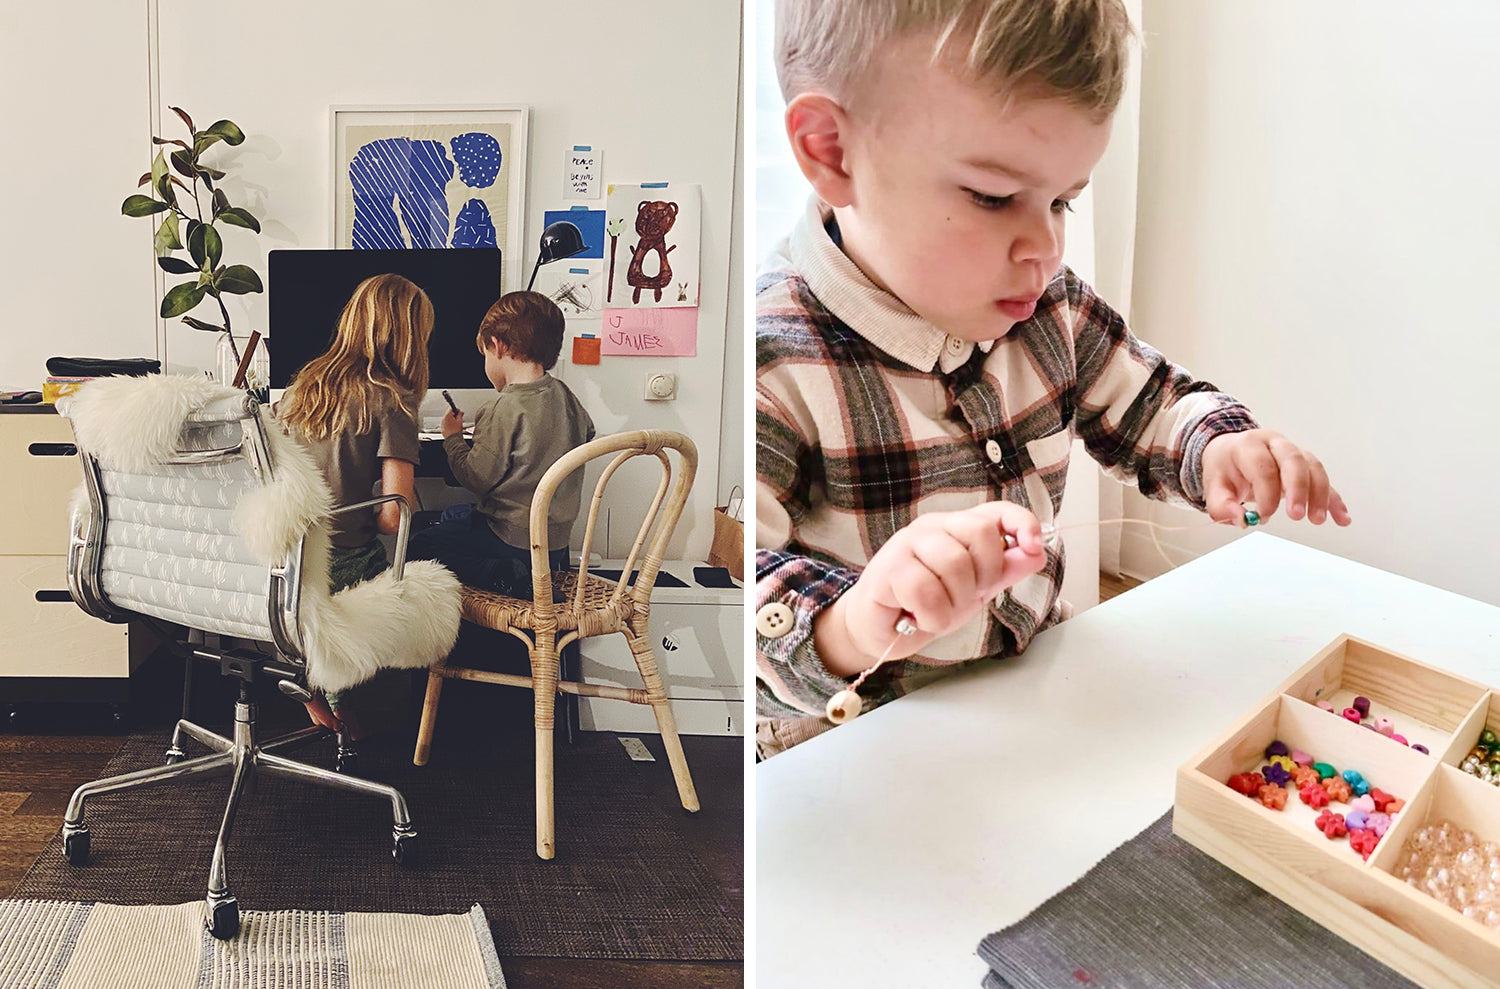 pictures of our families from this week: siblings writing a note at a computer desk, and toddler boy putting beads on a string.